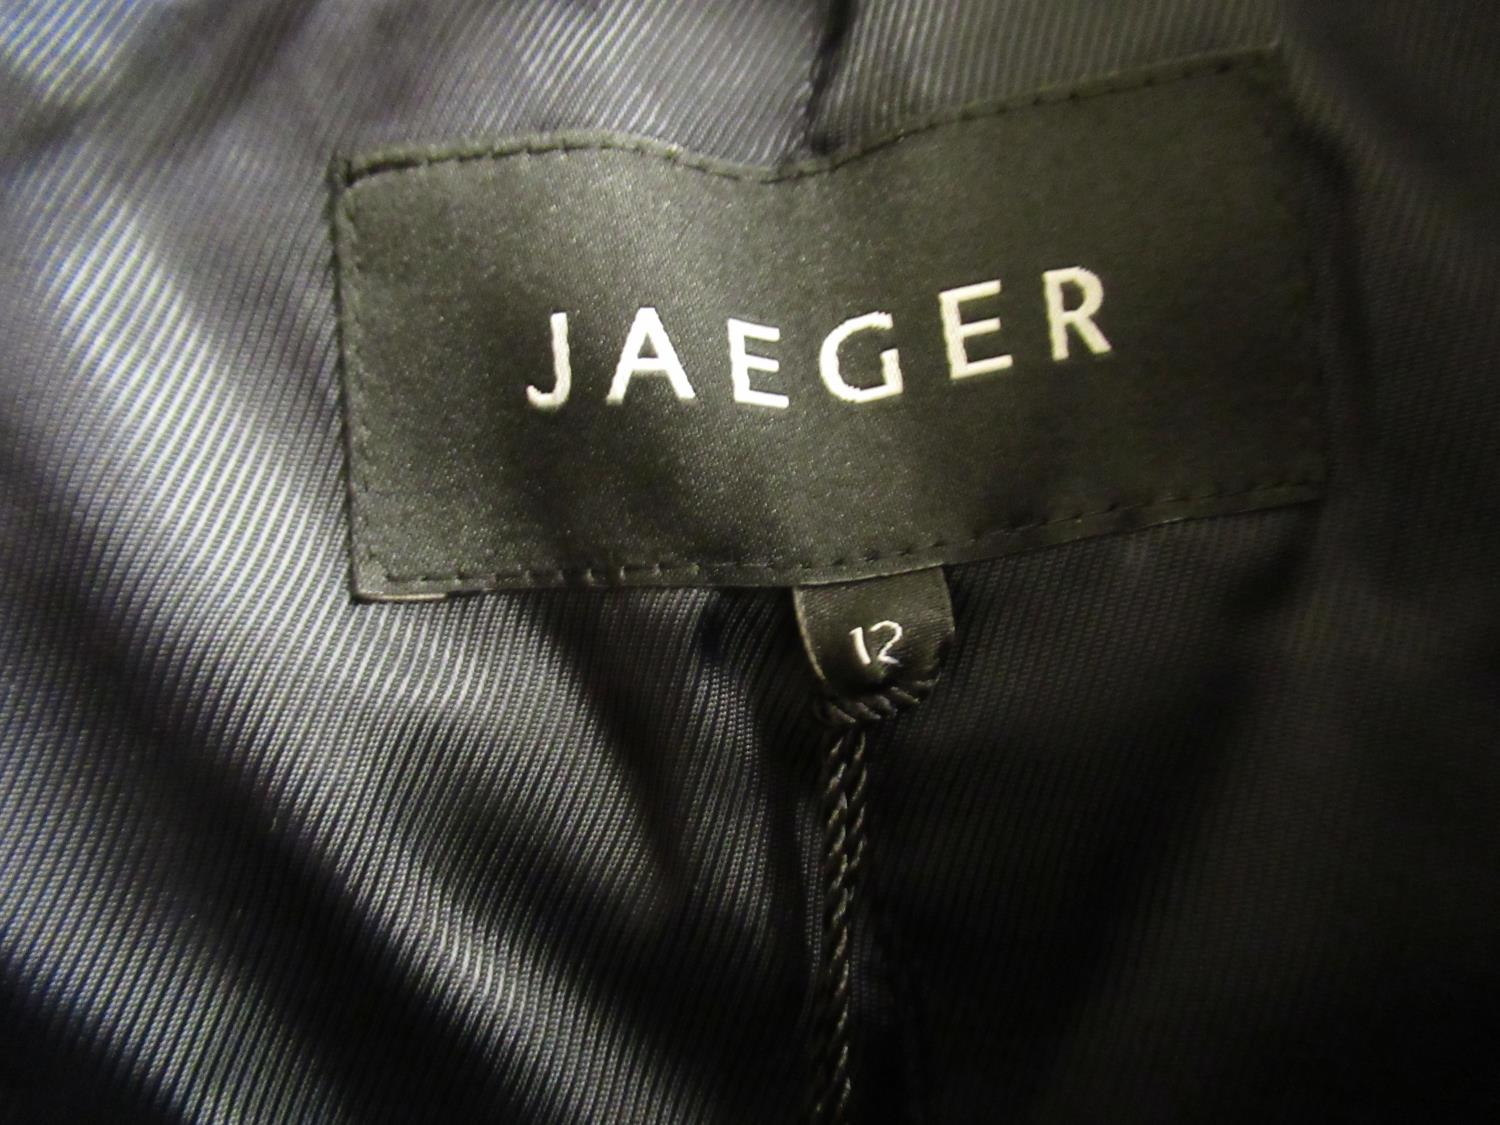 Jaeger ladies black and grey herringbone tweed coat, size 12 (as new with labels) and a Jaeger - Image 2 of 4